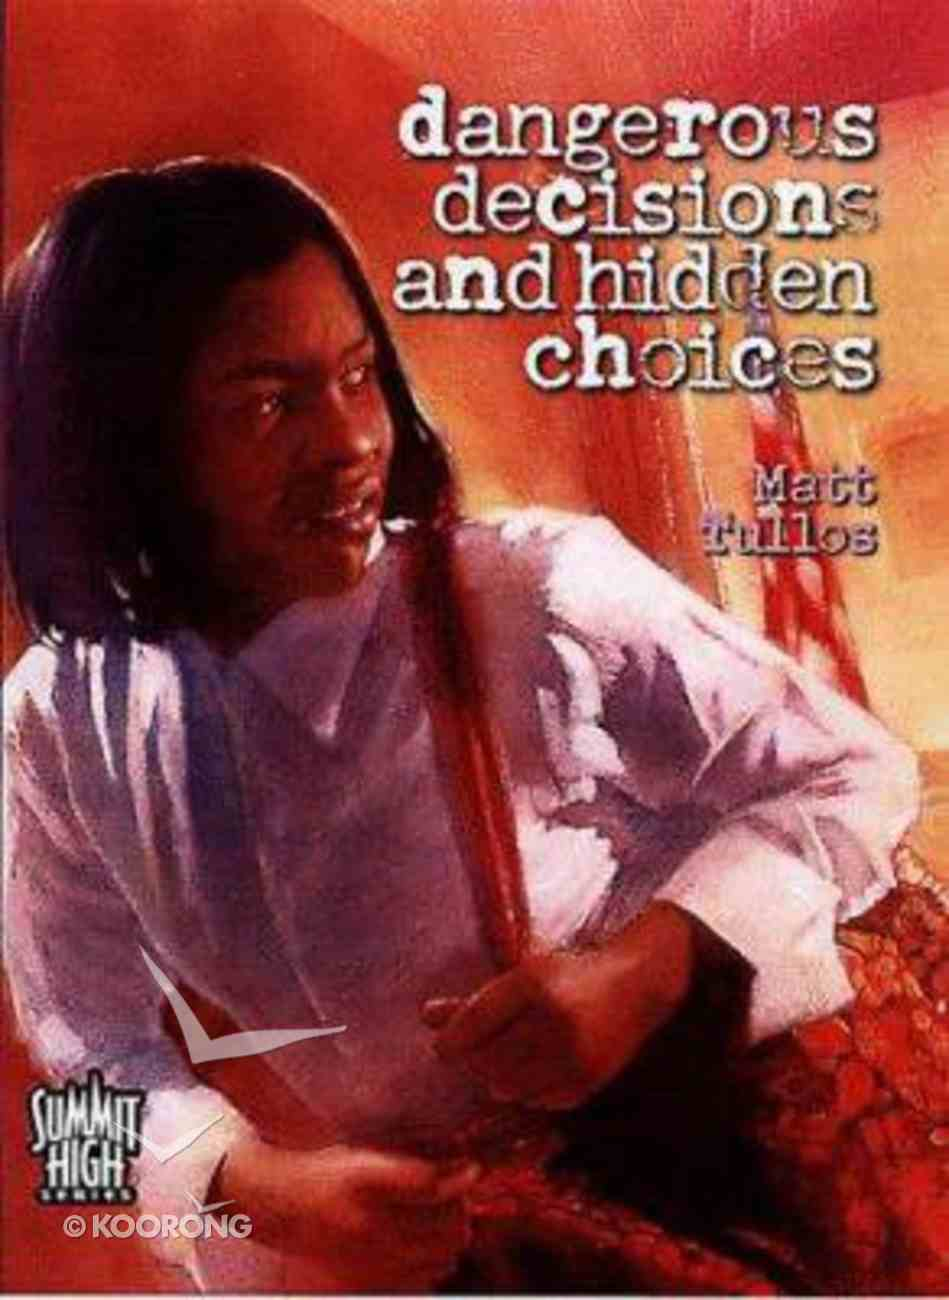 Dangerous Decisions and Hidden Choices (#05 in Summit High Series) Paperback